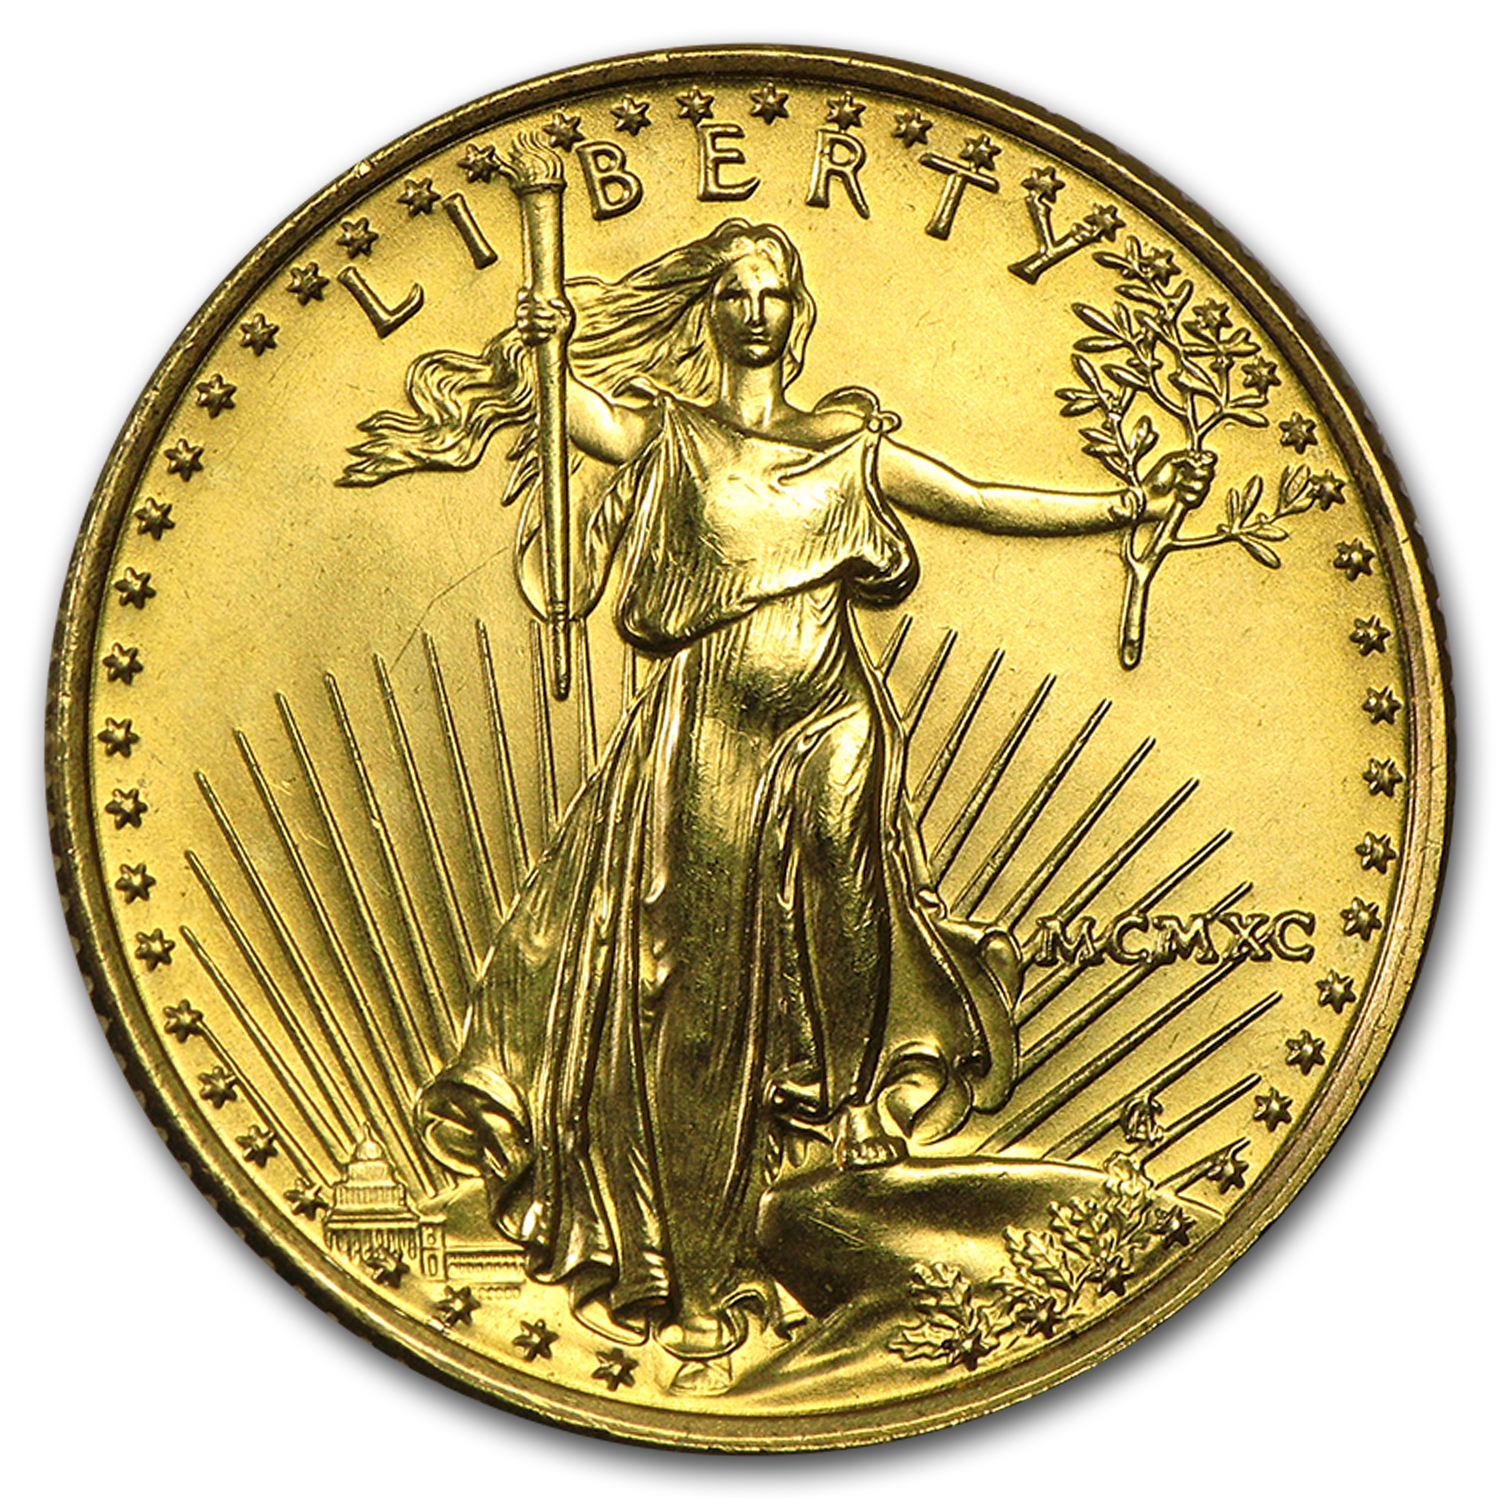 1990 MCMXC 1/4 oz Gold American Eagle (BU)